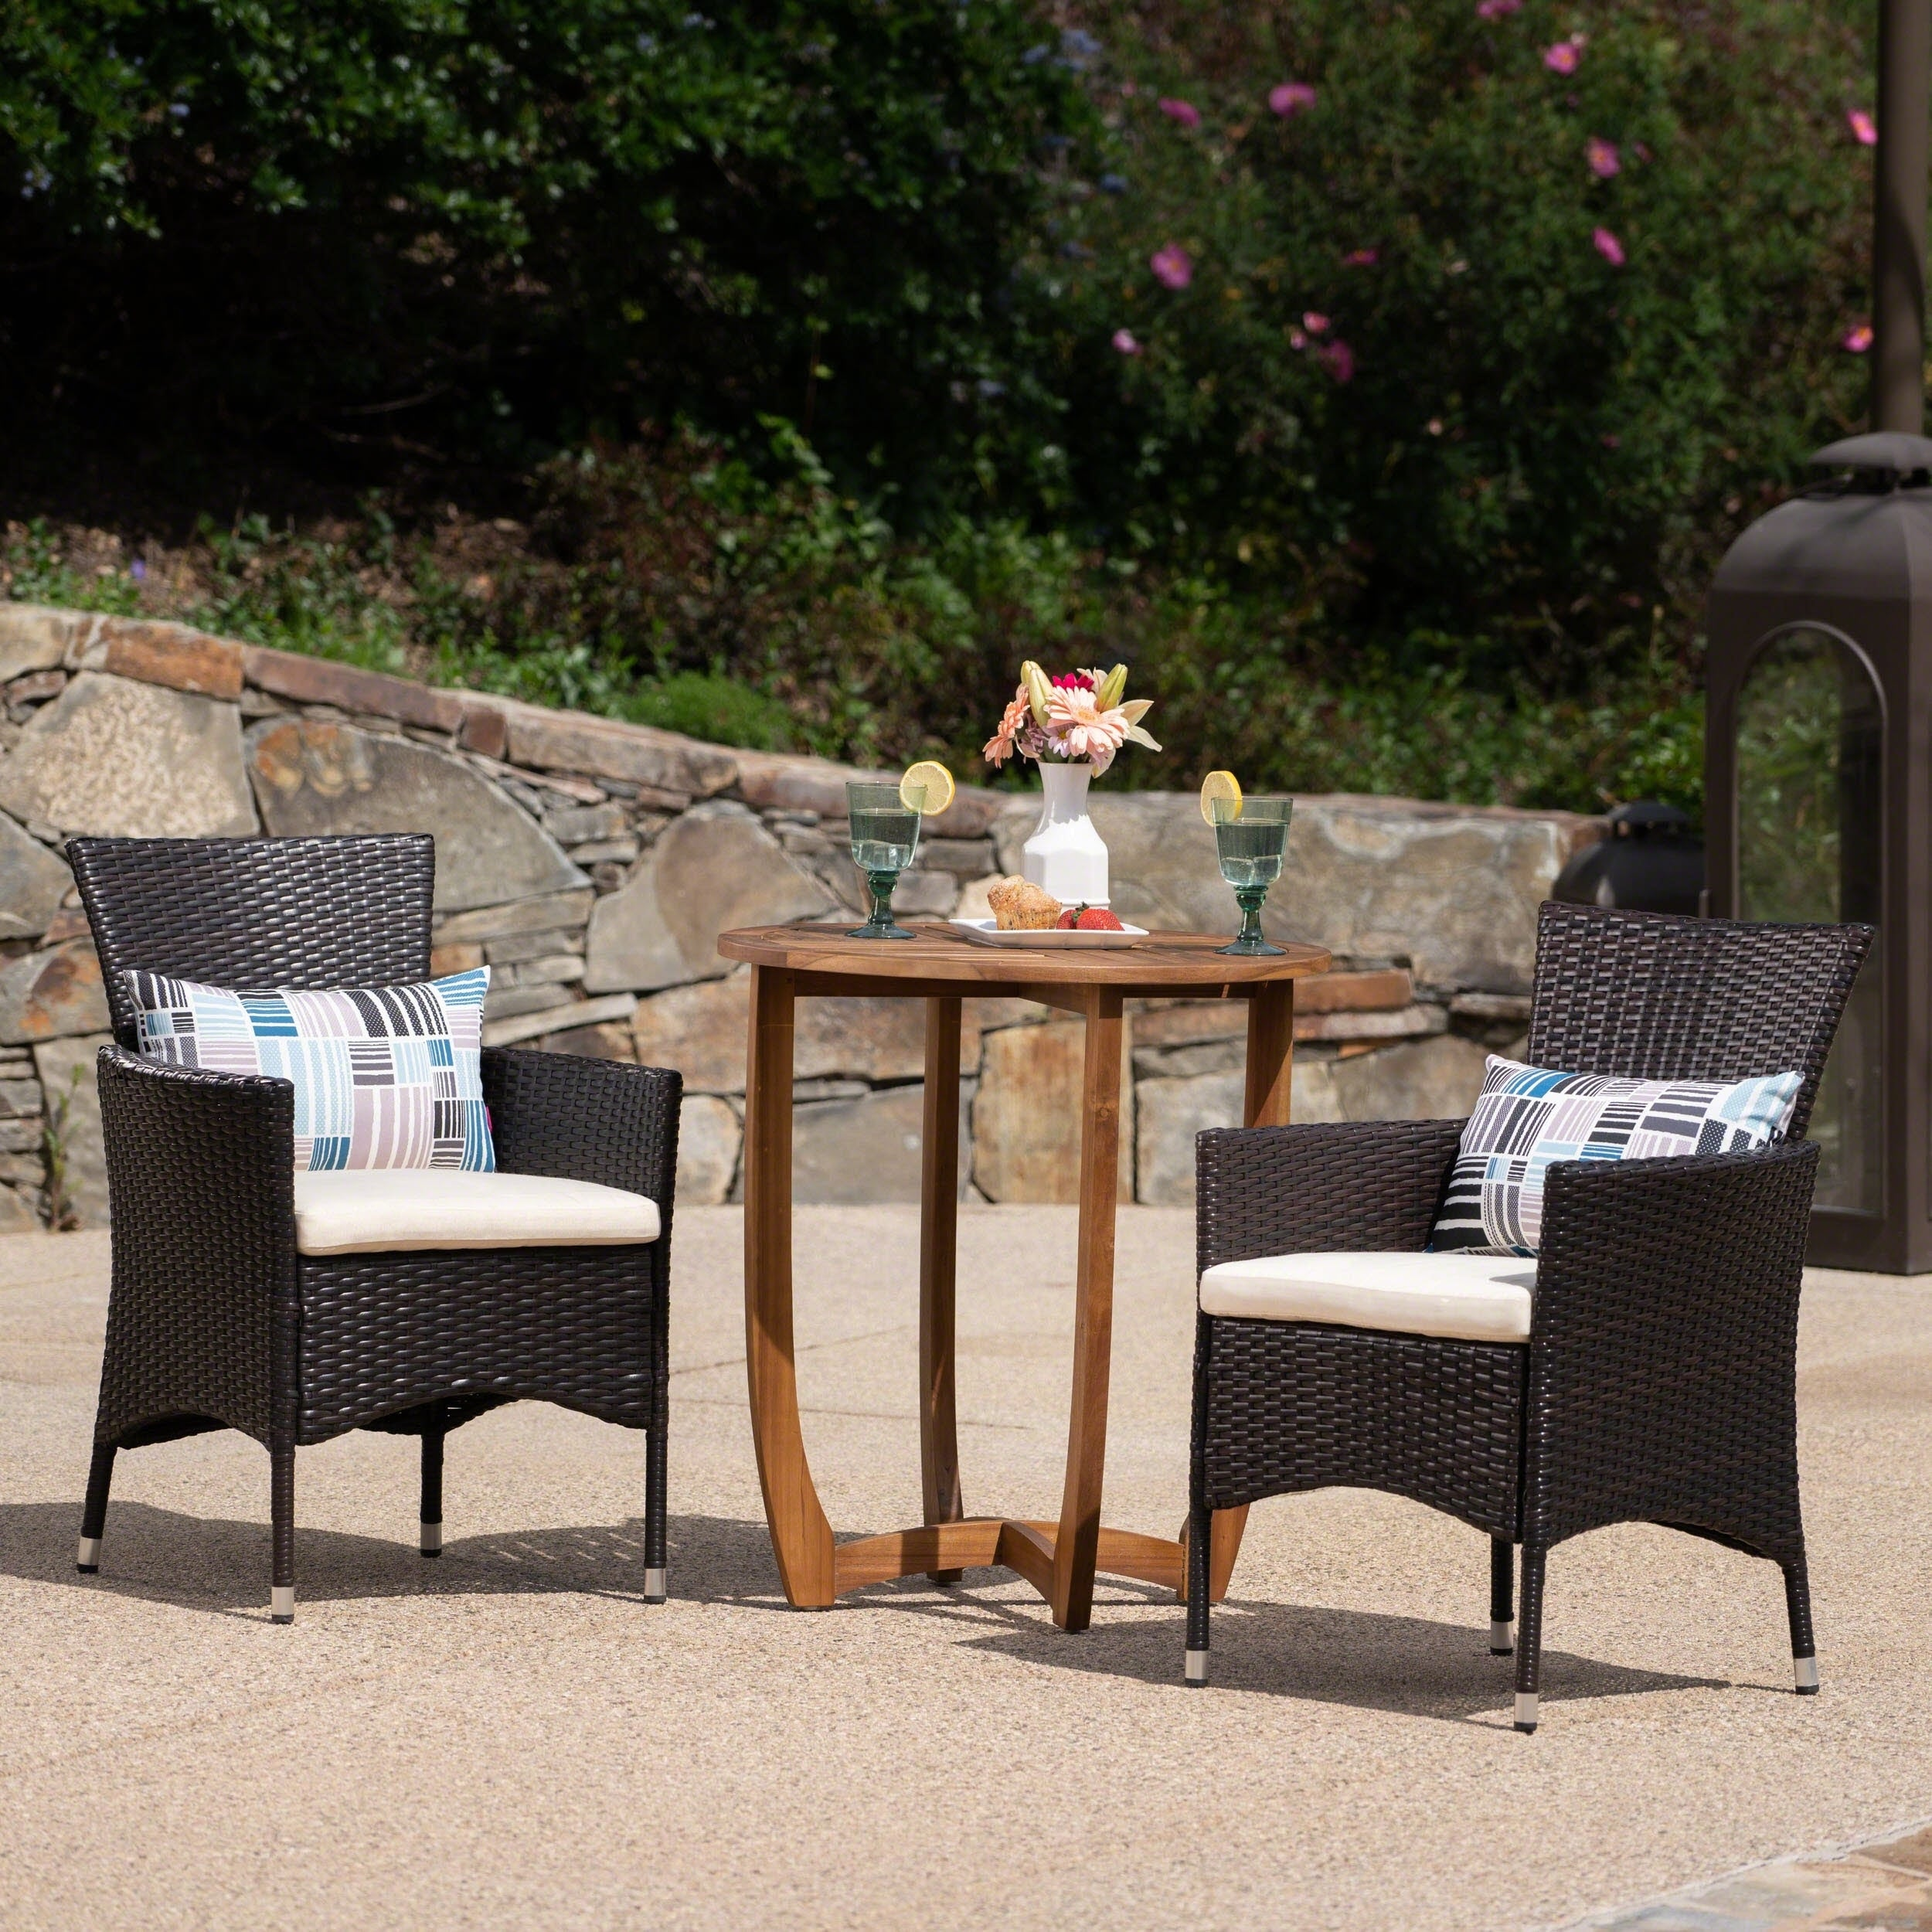 Outstanding Details About Ellie Outdoor 3 Piece Wicker Bistro Set By Christopher Onthecornerstone Fun Painted Chair Ideas Images Onthecornerstoneorg